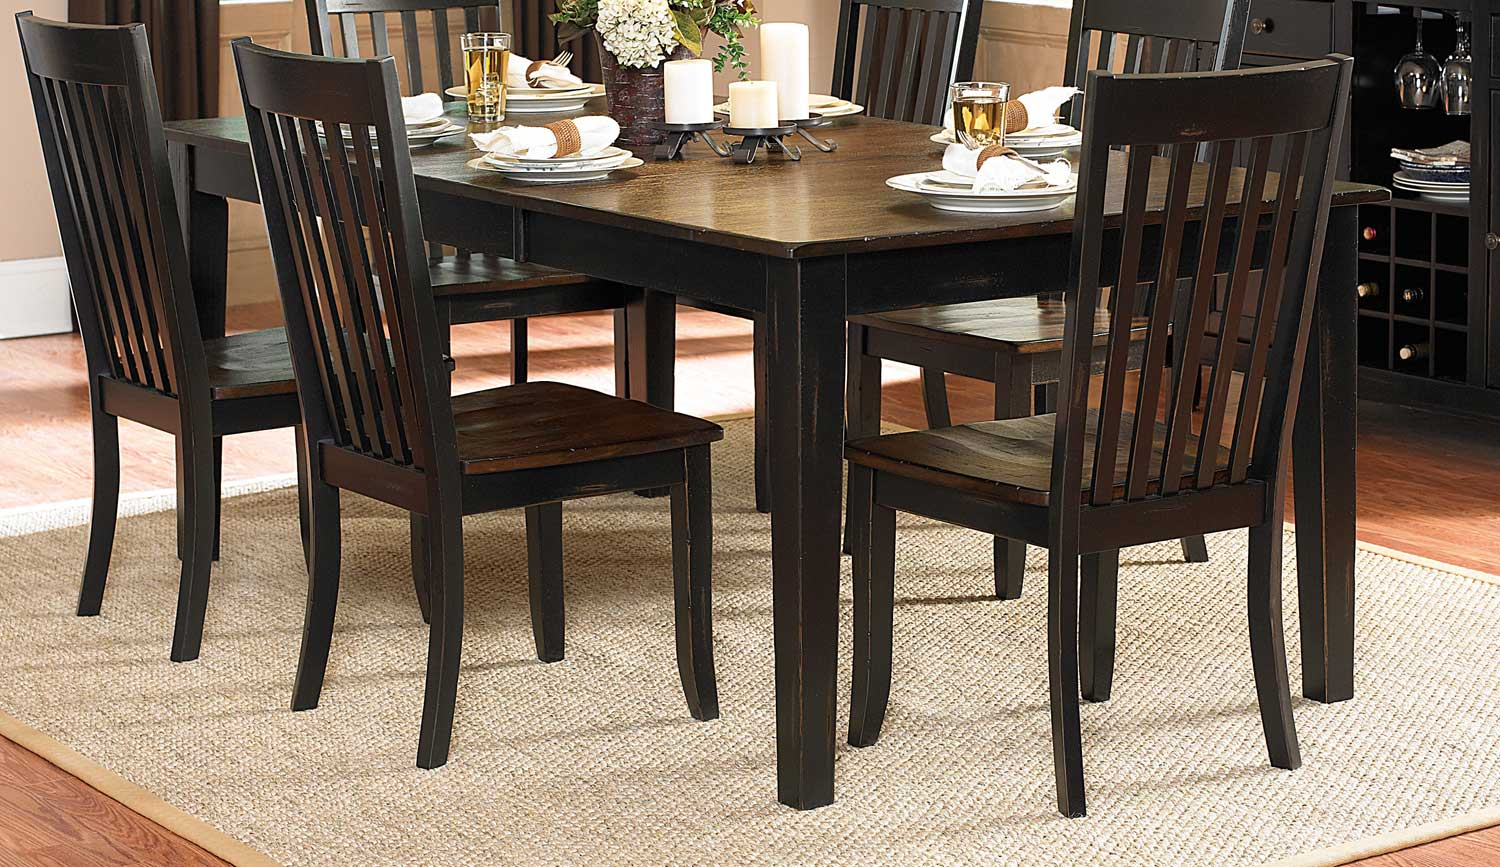 Homelegance Three Falls Rectangular Dining Table   Two Tone Dark  Brown/Black Sand Part 44